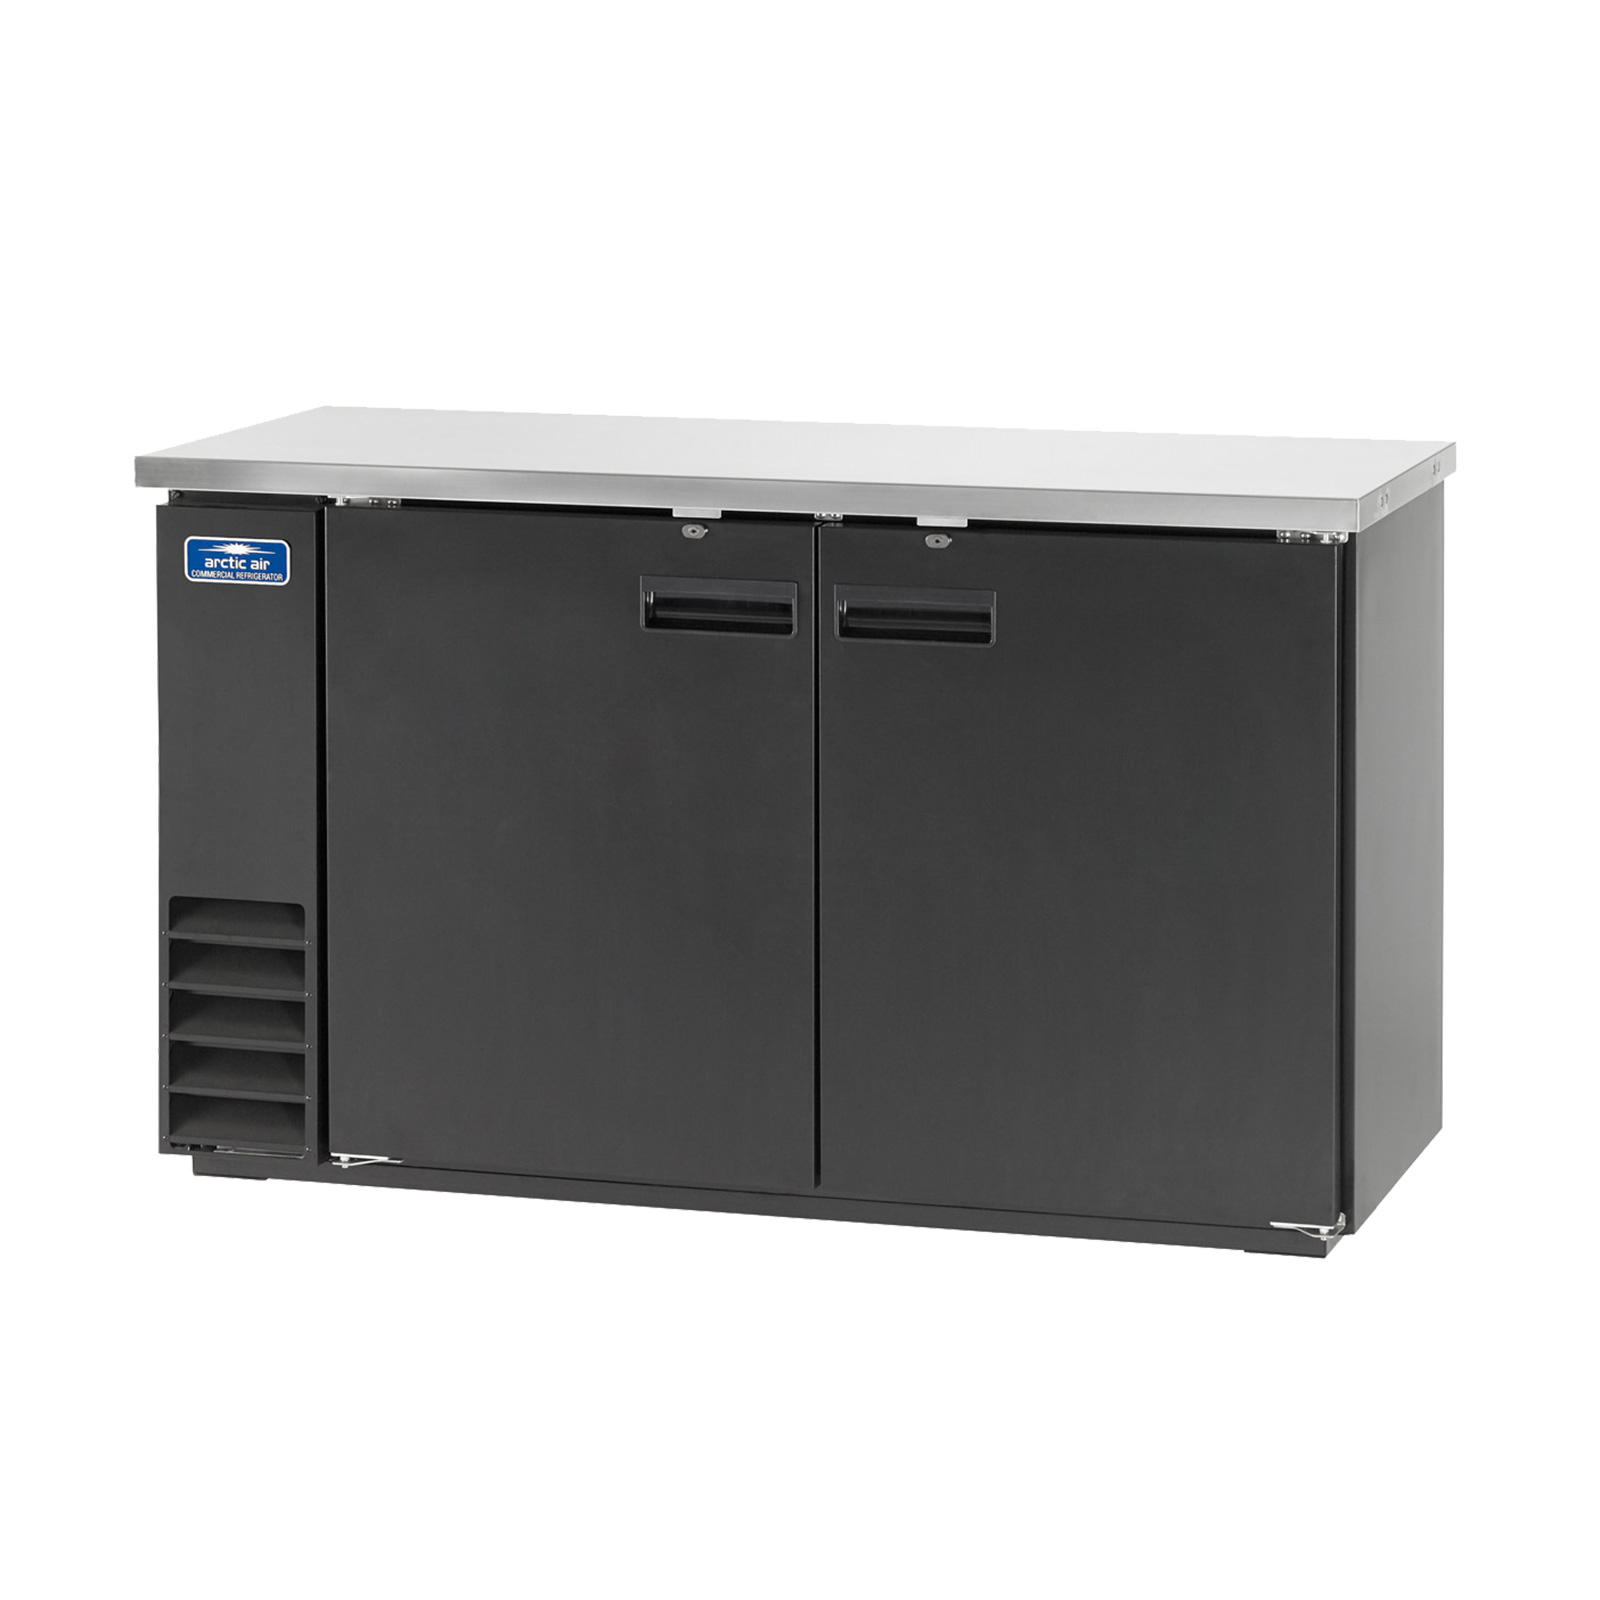 Arctic Air ABB60 back bar cabinet, refrigerated